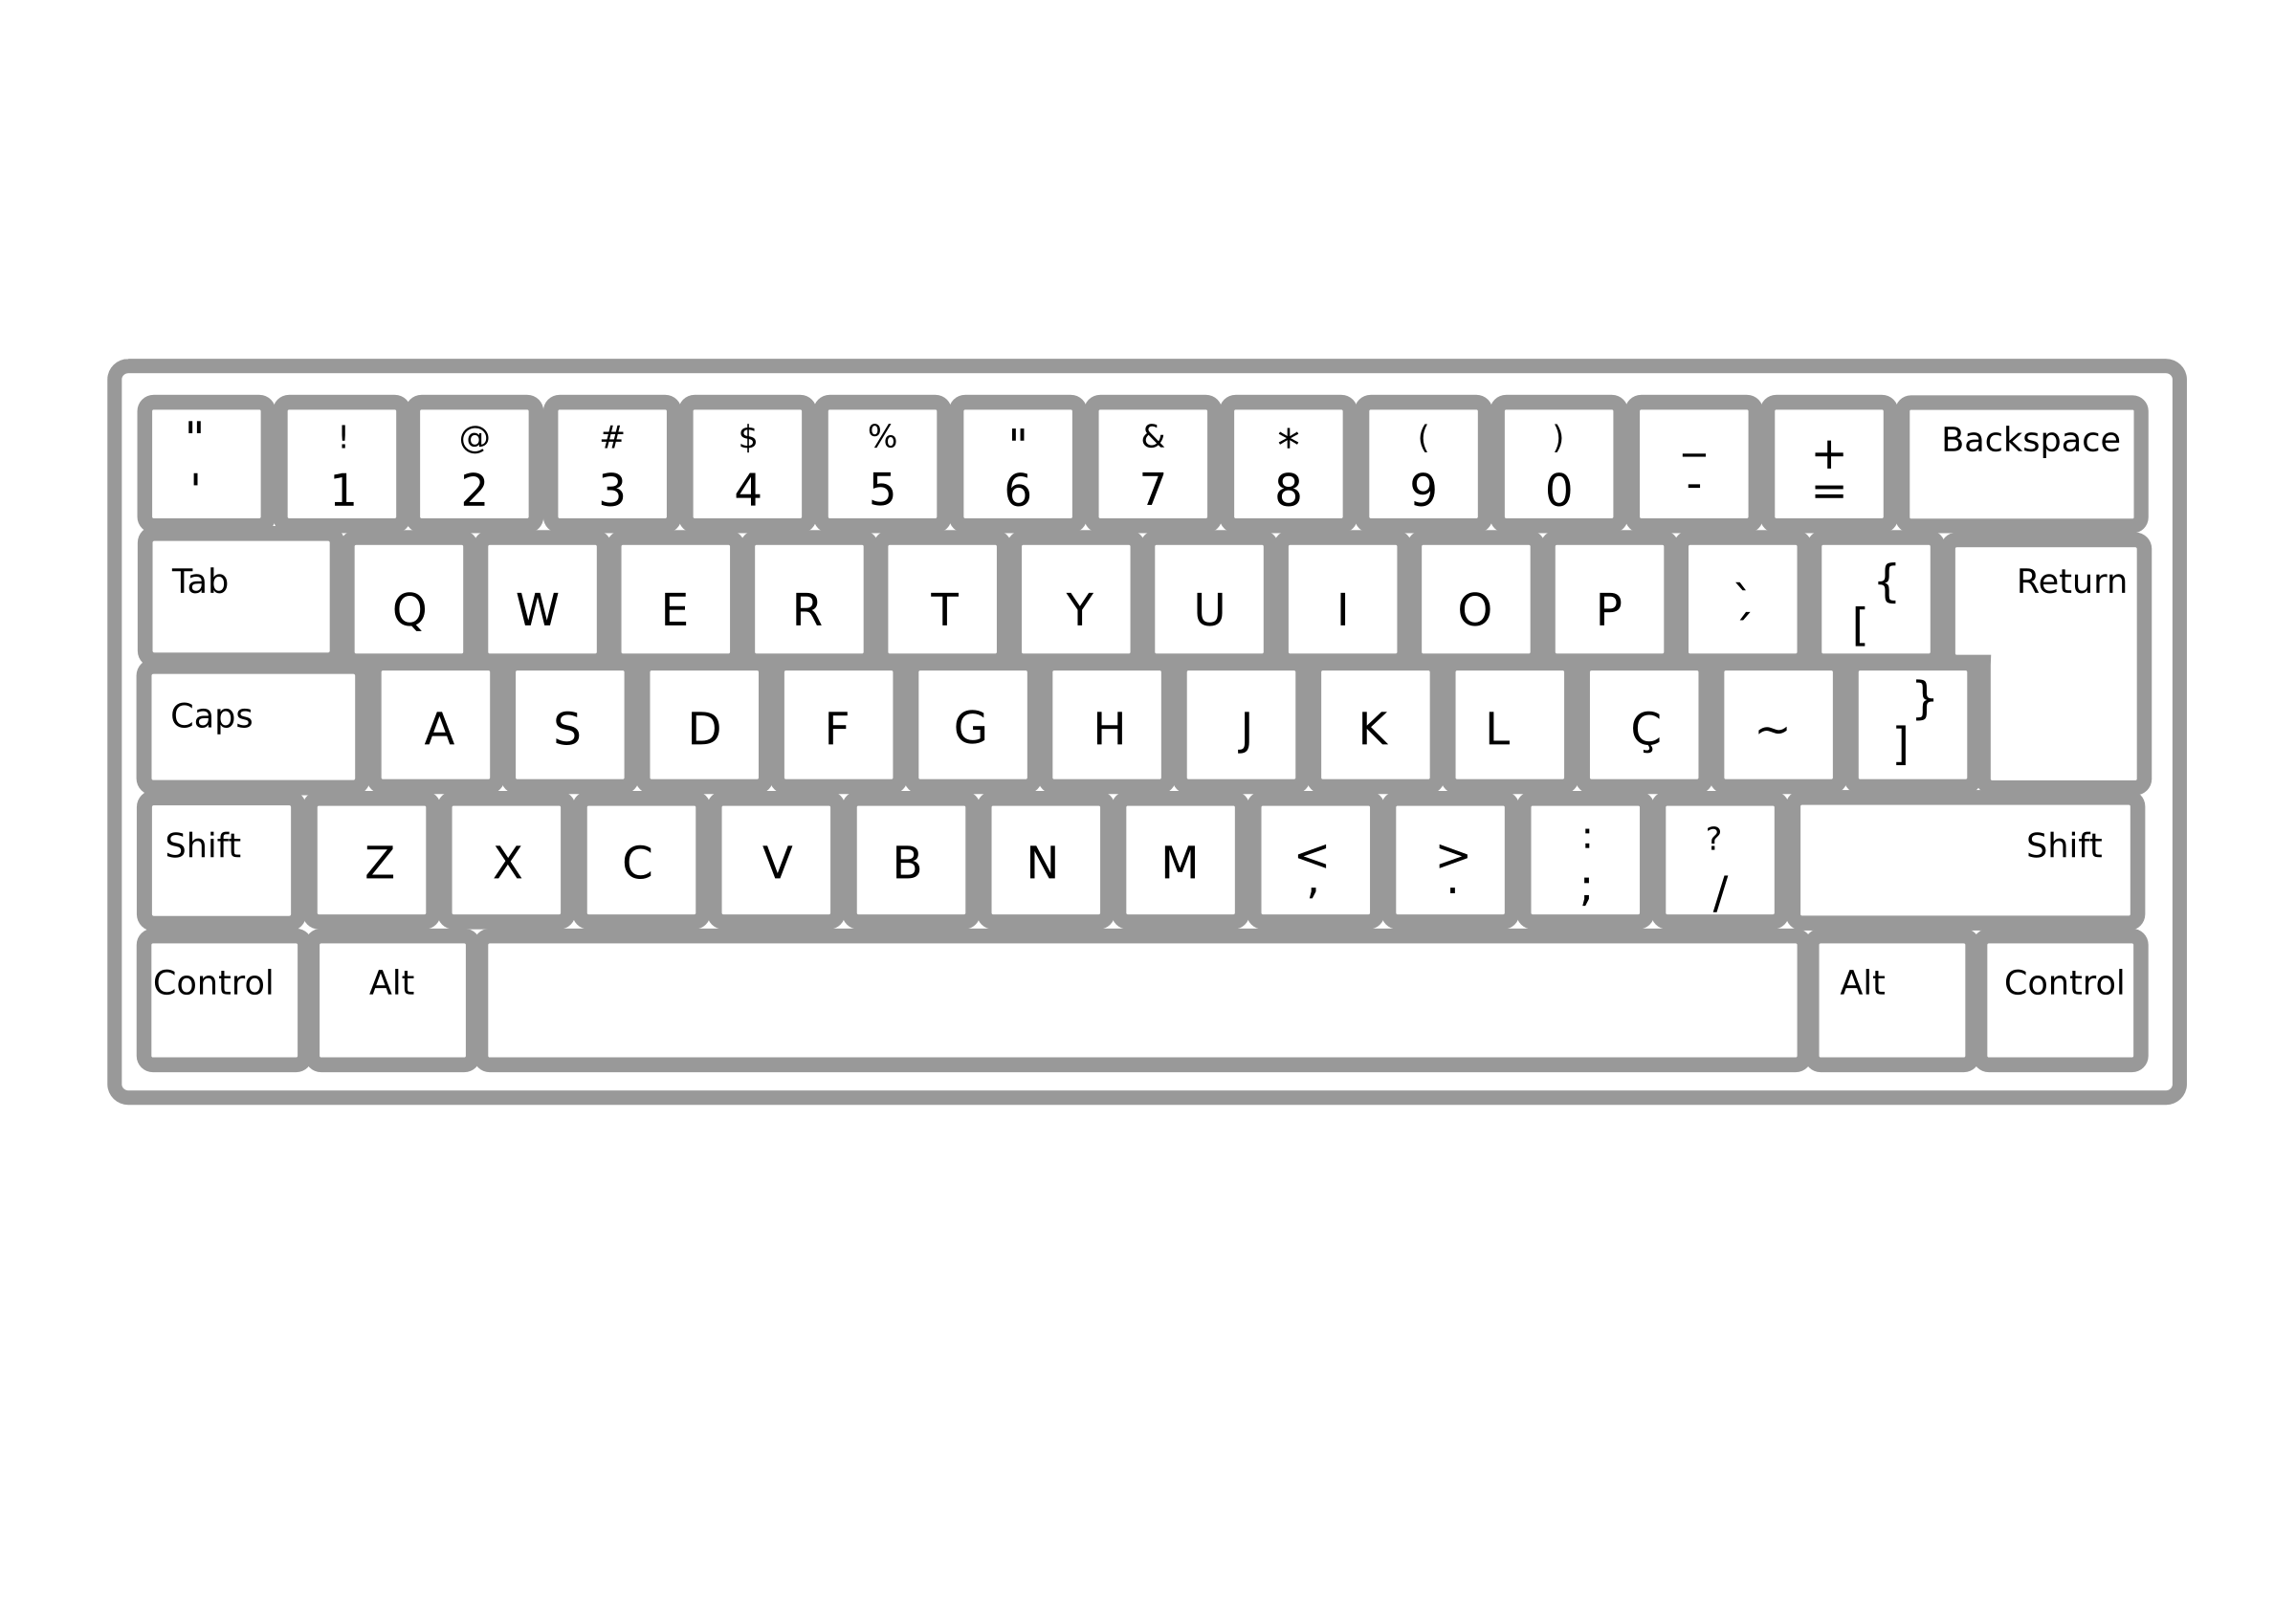 Drawing keyboard black and white. Collection of clipart